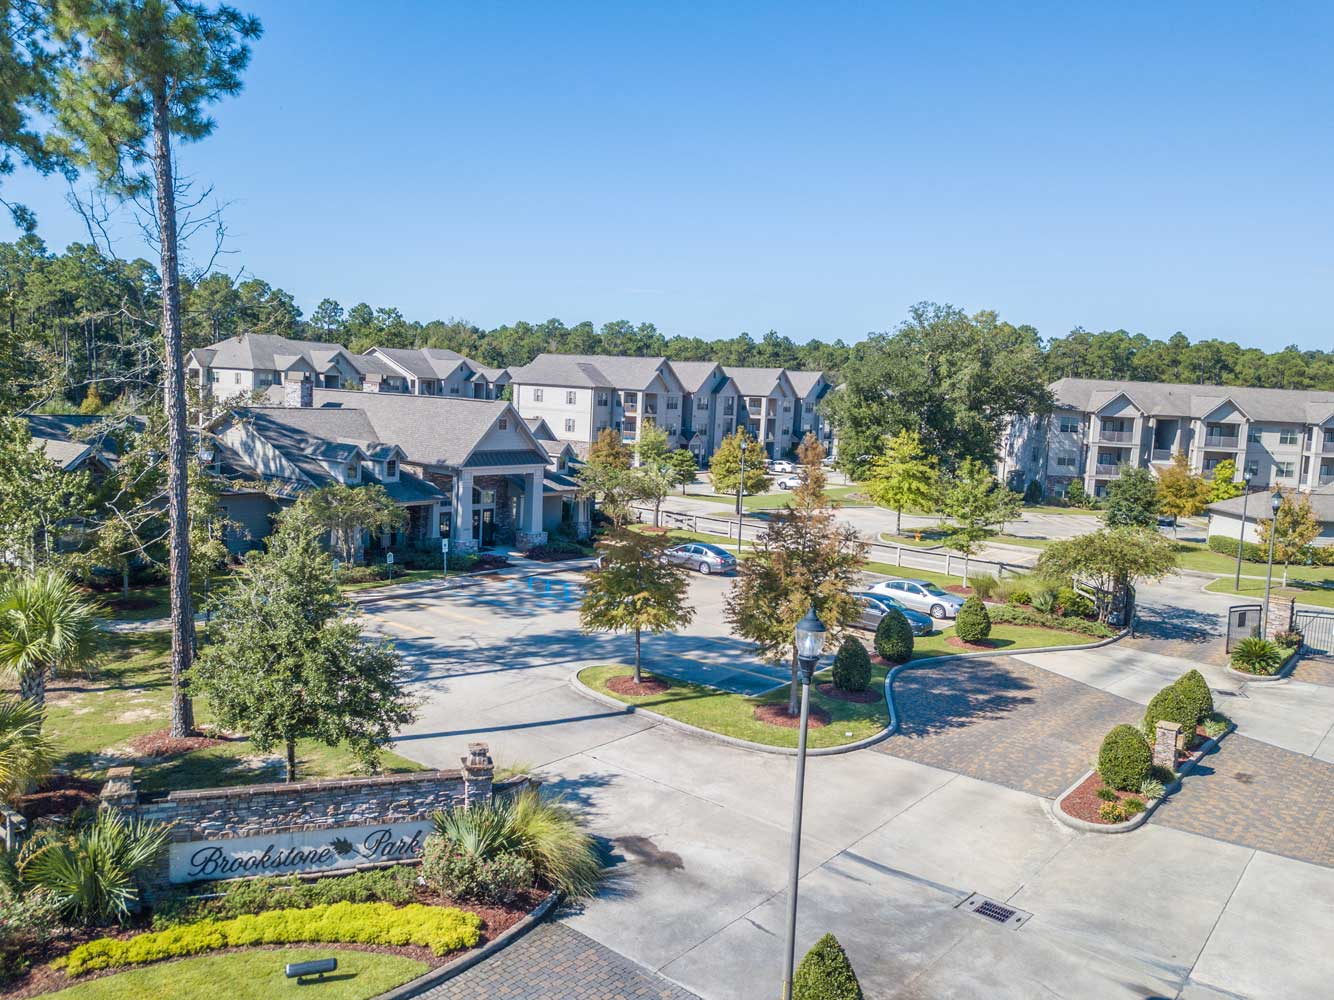 Open Lot at Brookstone Park Apartments in Covington, LA